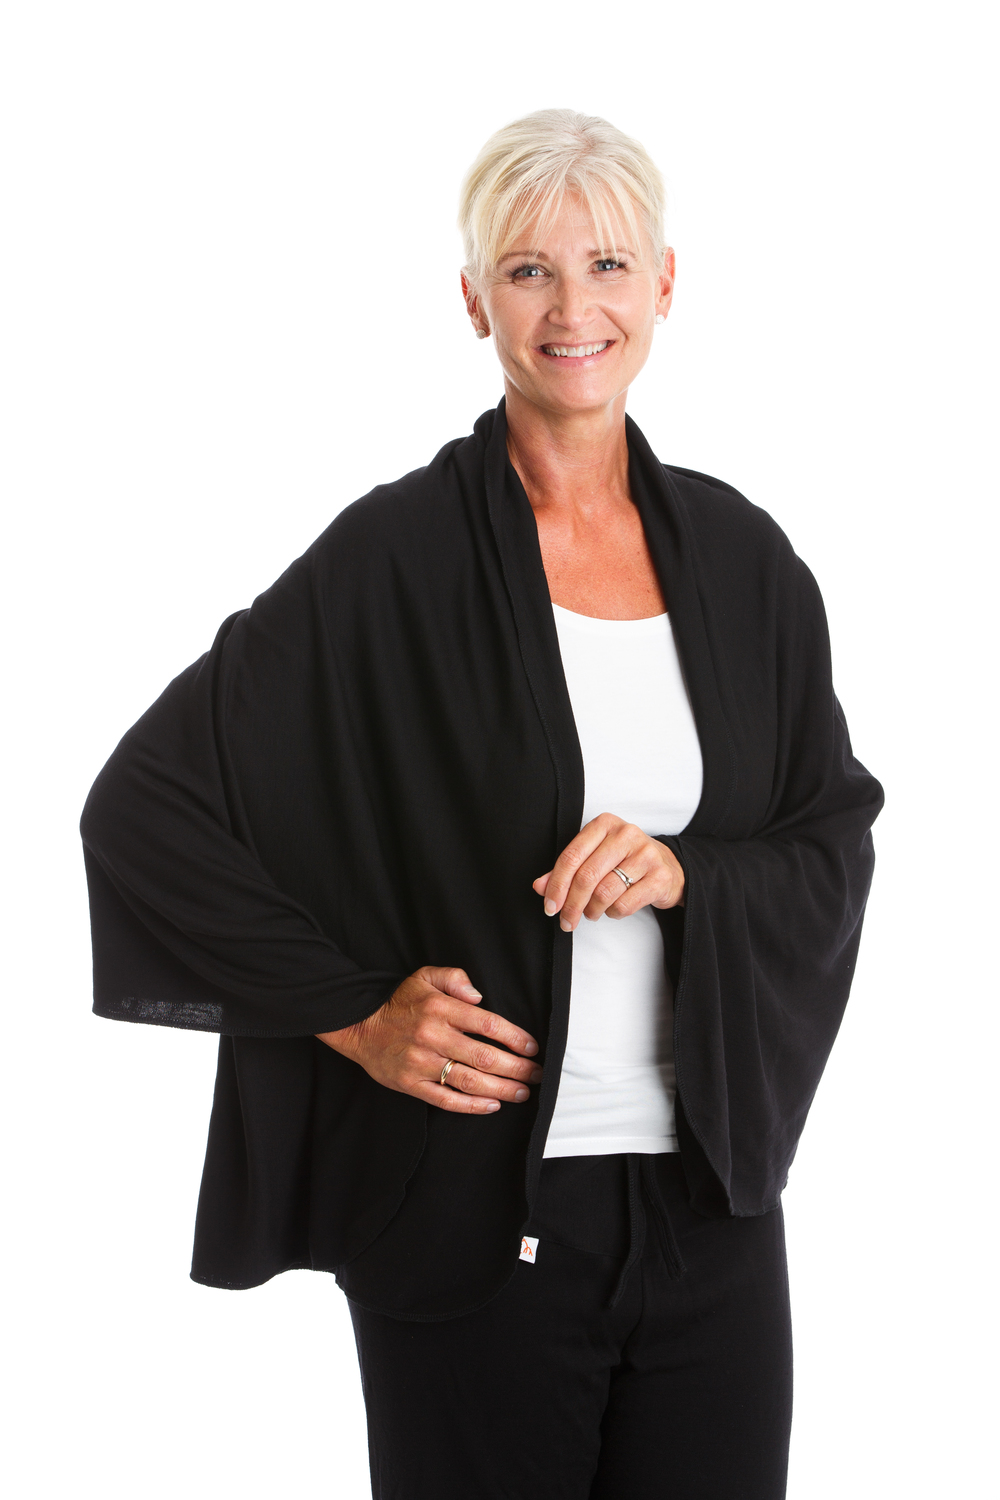 GIRAF WOOL SHAWL   Thin and flexible shawl in 100% merino wool. Works perfect as yoga blanket for meditation and deep relaxation.  Merino wool provides warmth, does not itch and feels comfortable on sensitive skin. If you do not practice yoga, the shawl works great as a warm accessoire.